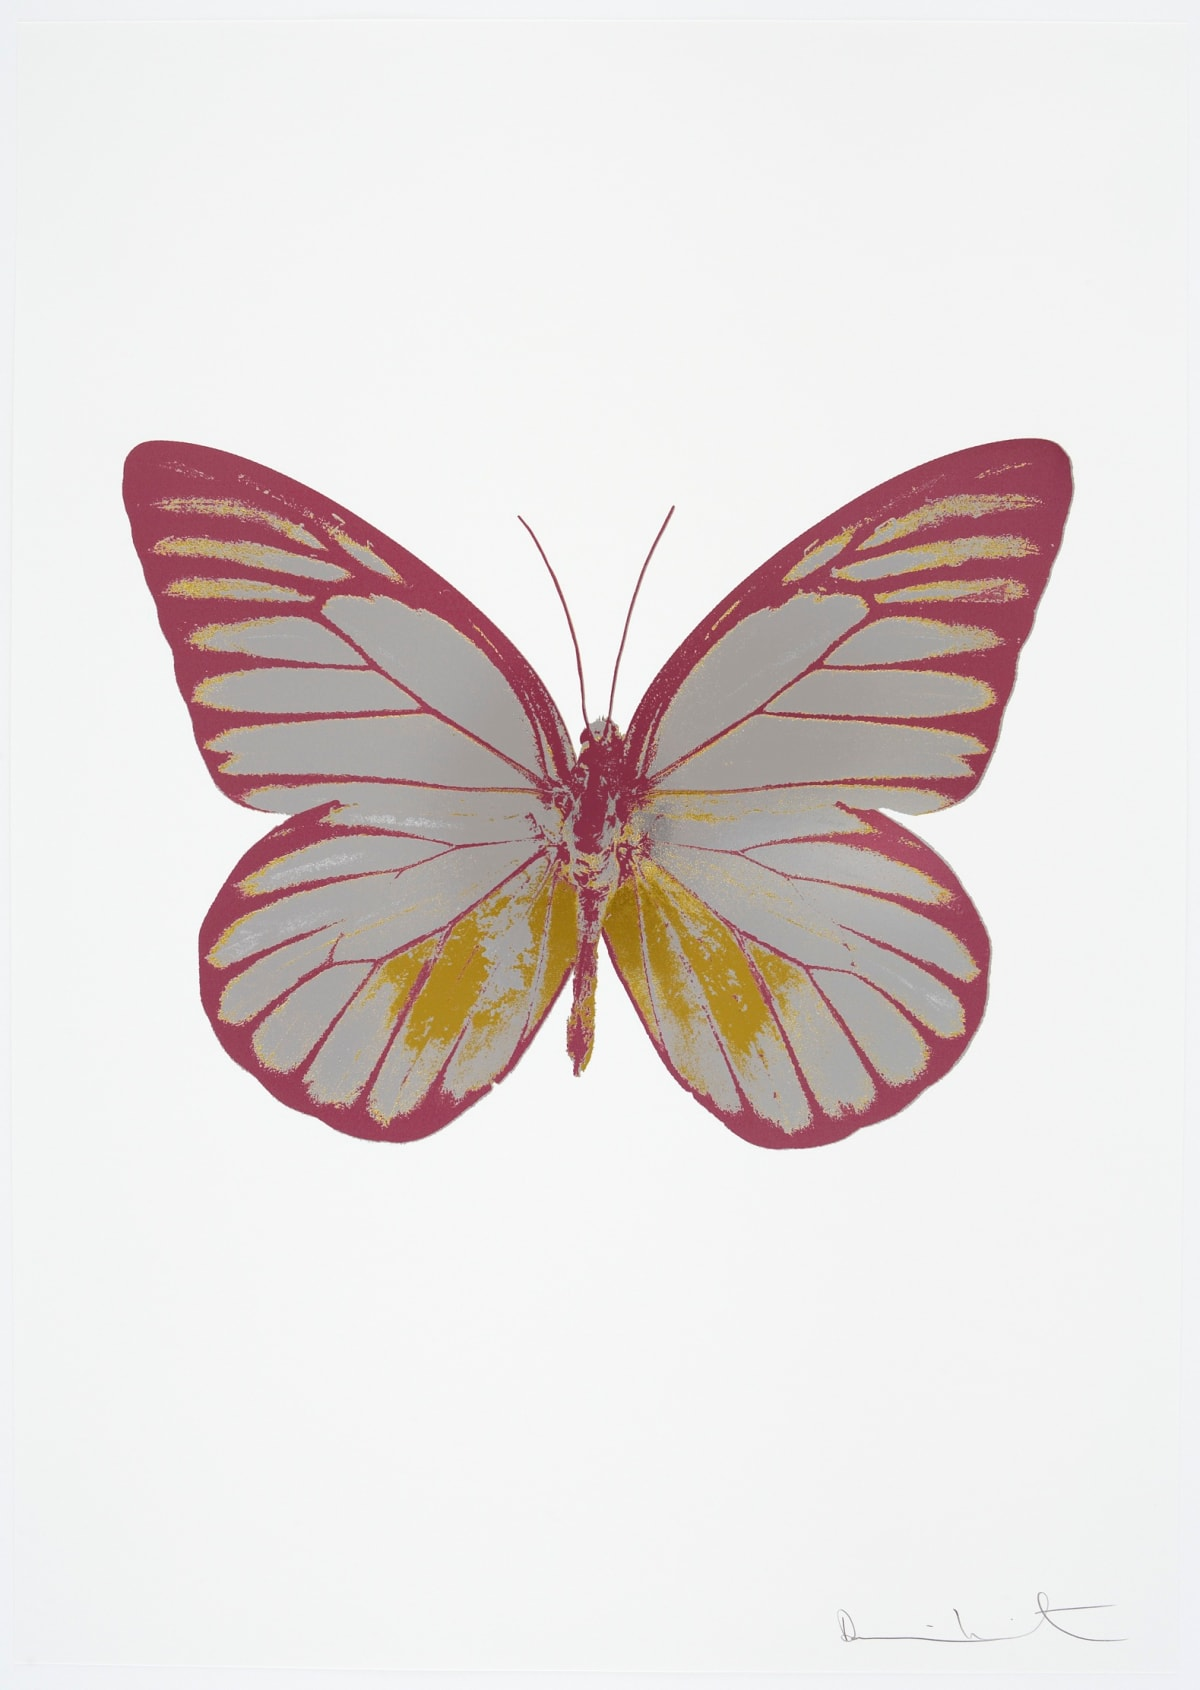 Damien Hirst The Souls I - Silver Gloss/Oriental Gold/Loganberry Pink, 2010 3 colour foil block on 300gsm Arches 88 archival paper. Signed and numbered. Published by Paul Stolper and Other Criteria 72 x 51cm OC7749 / 659-12 Edition of 15